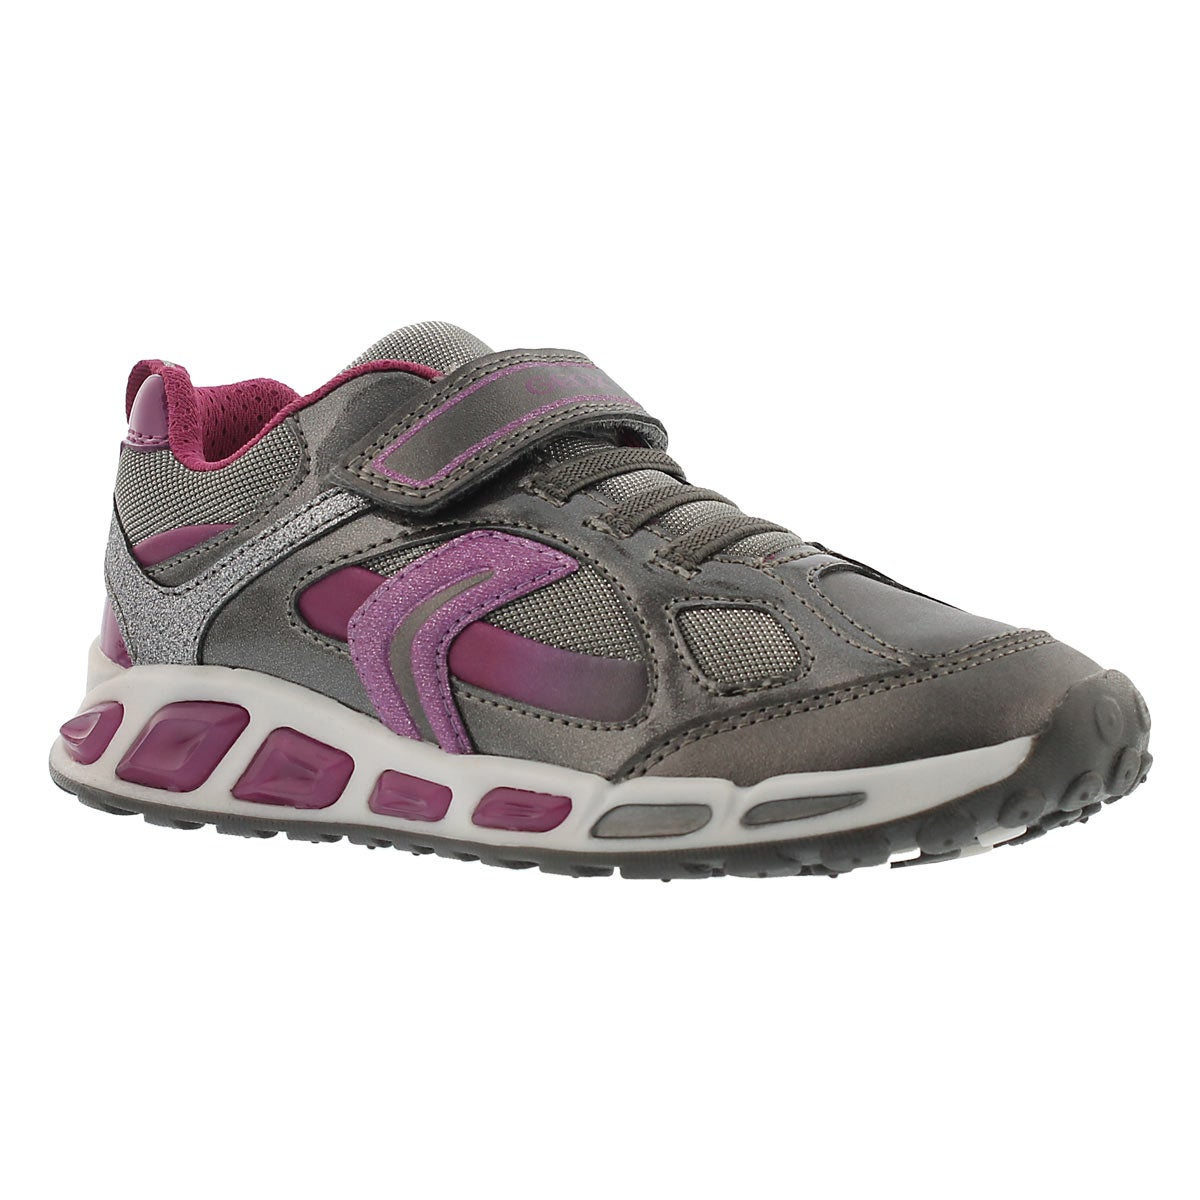 Grls Shuttle slv/ppl running shoe